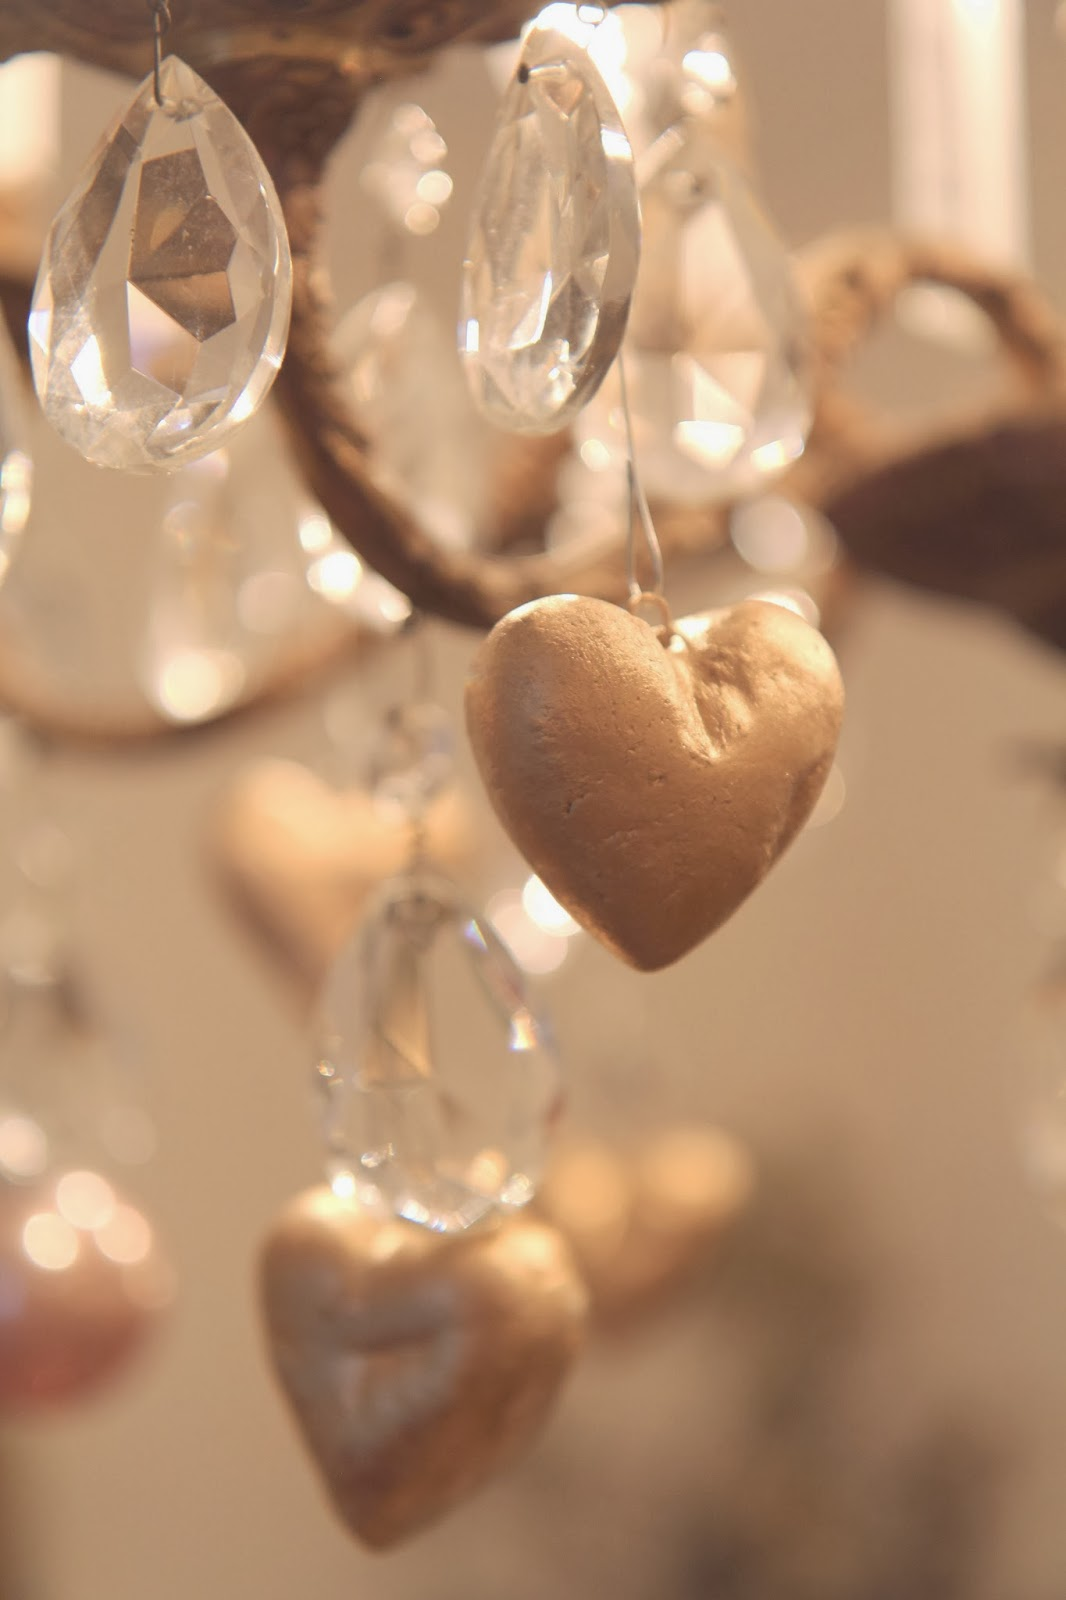 Gold Heart Ornaments for Valentine's Day Home Decor